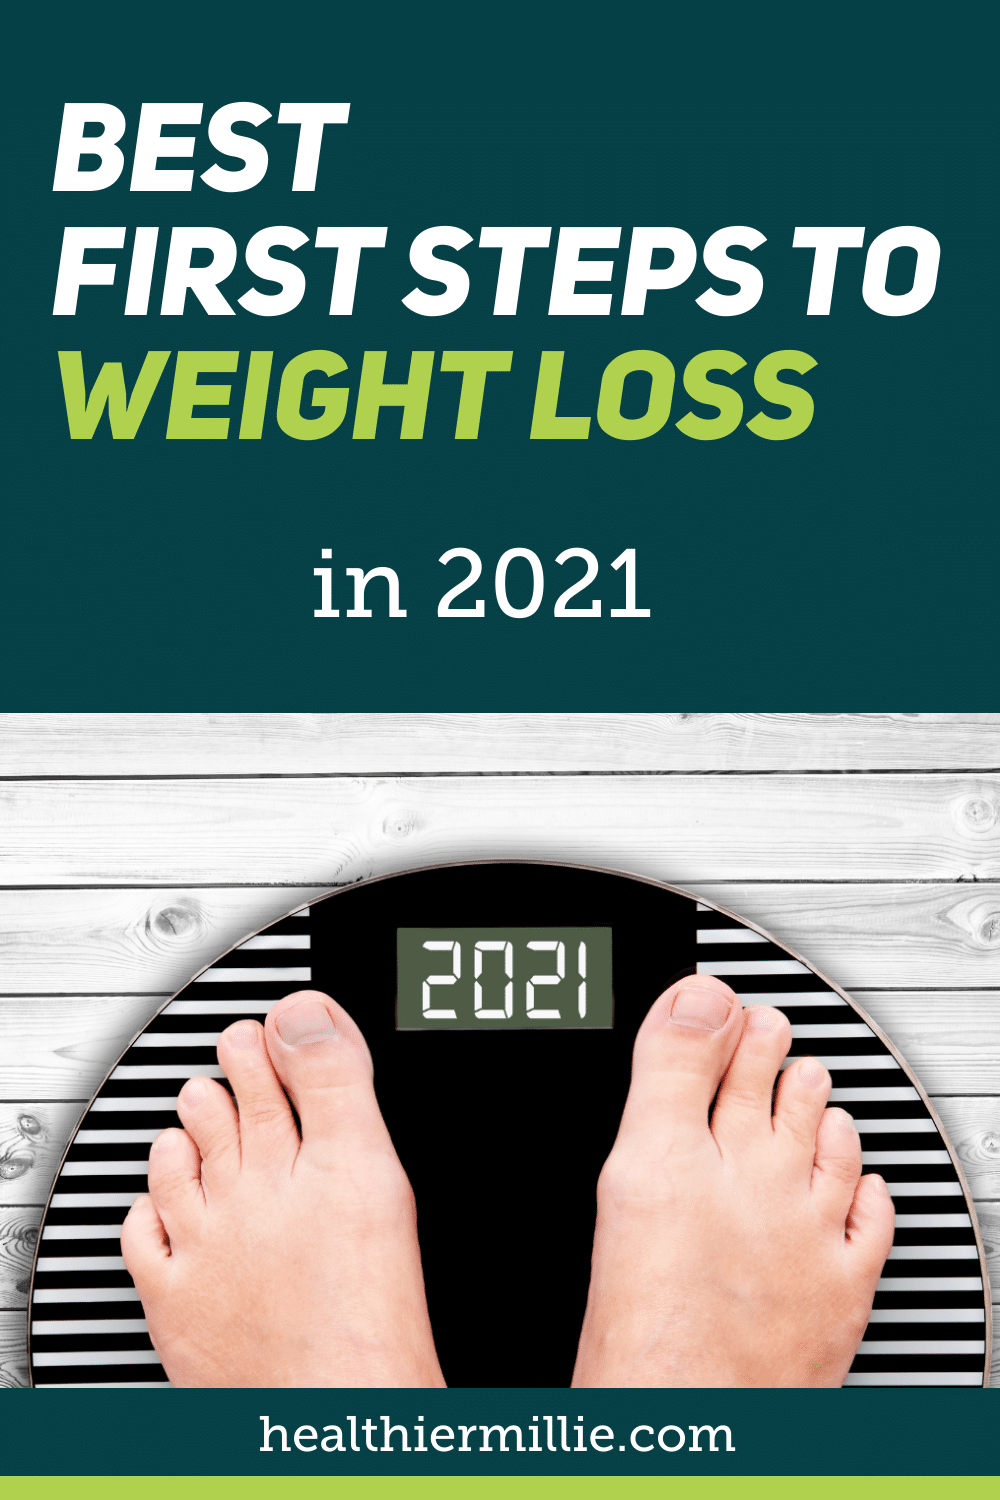 Best First Steps to Weight Loss in 2021